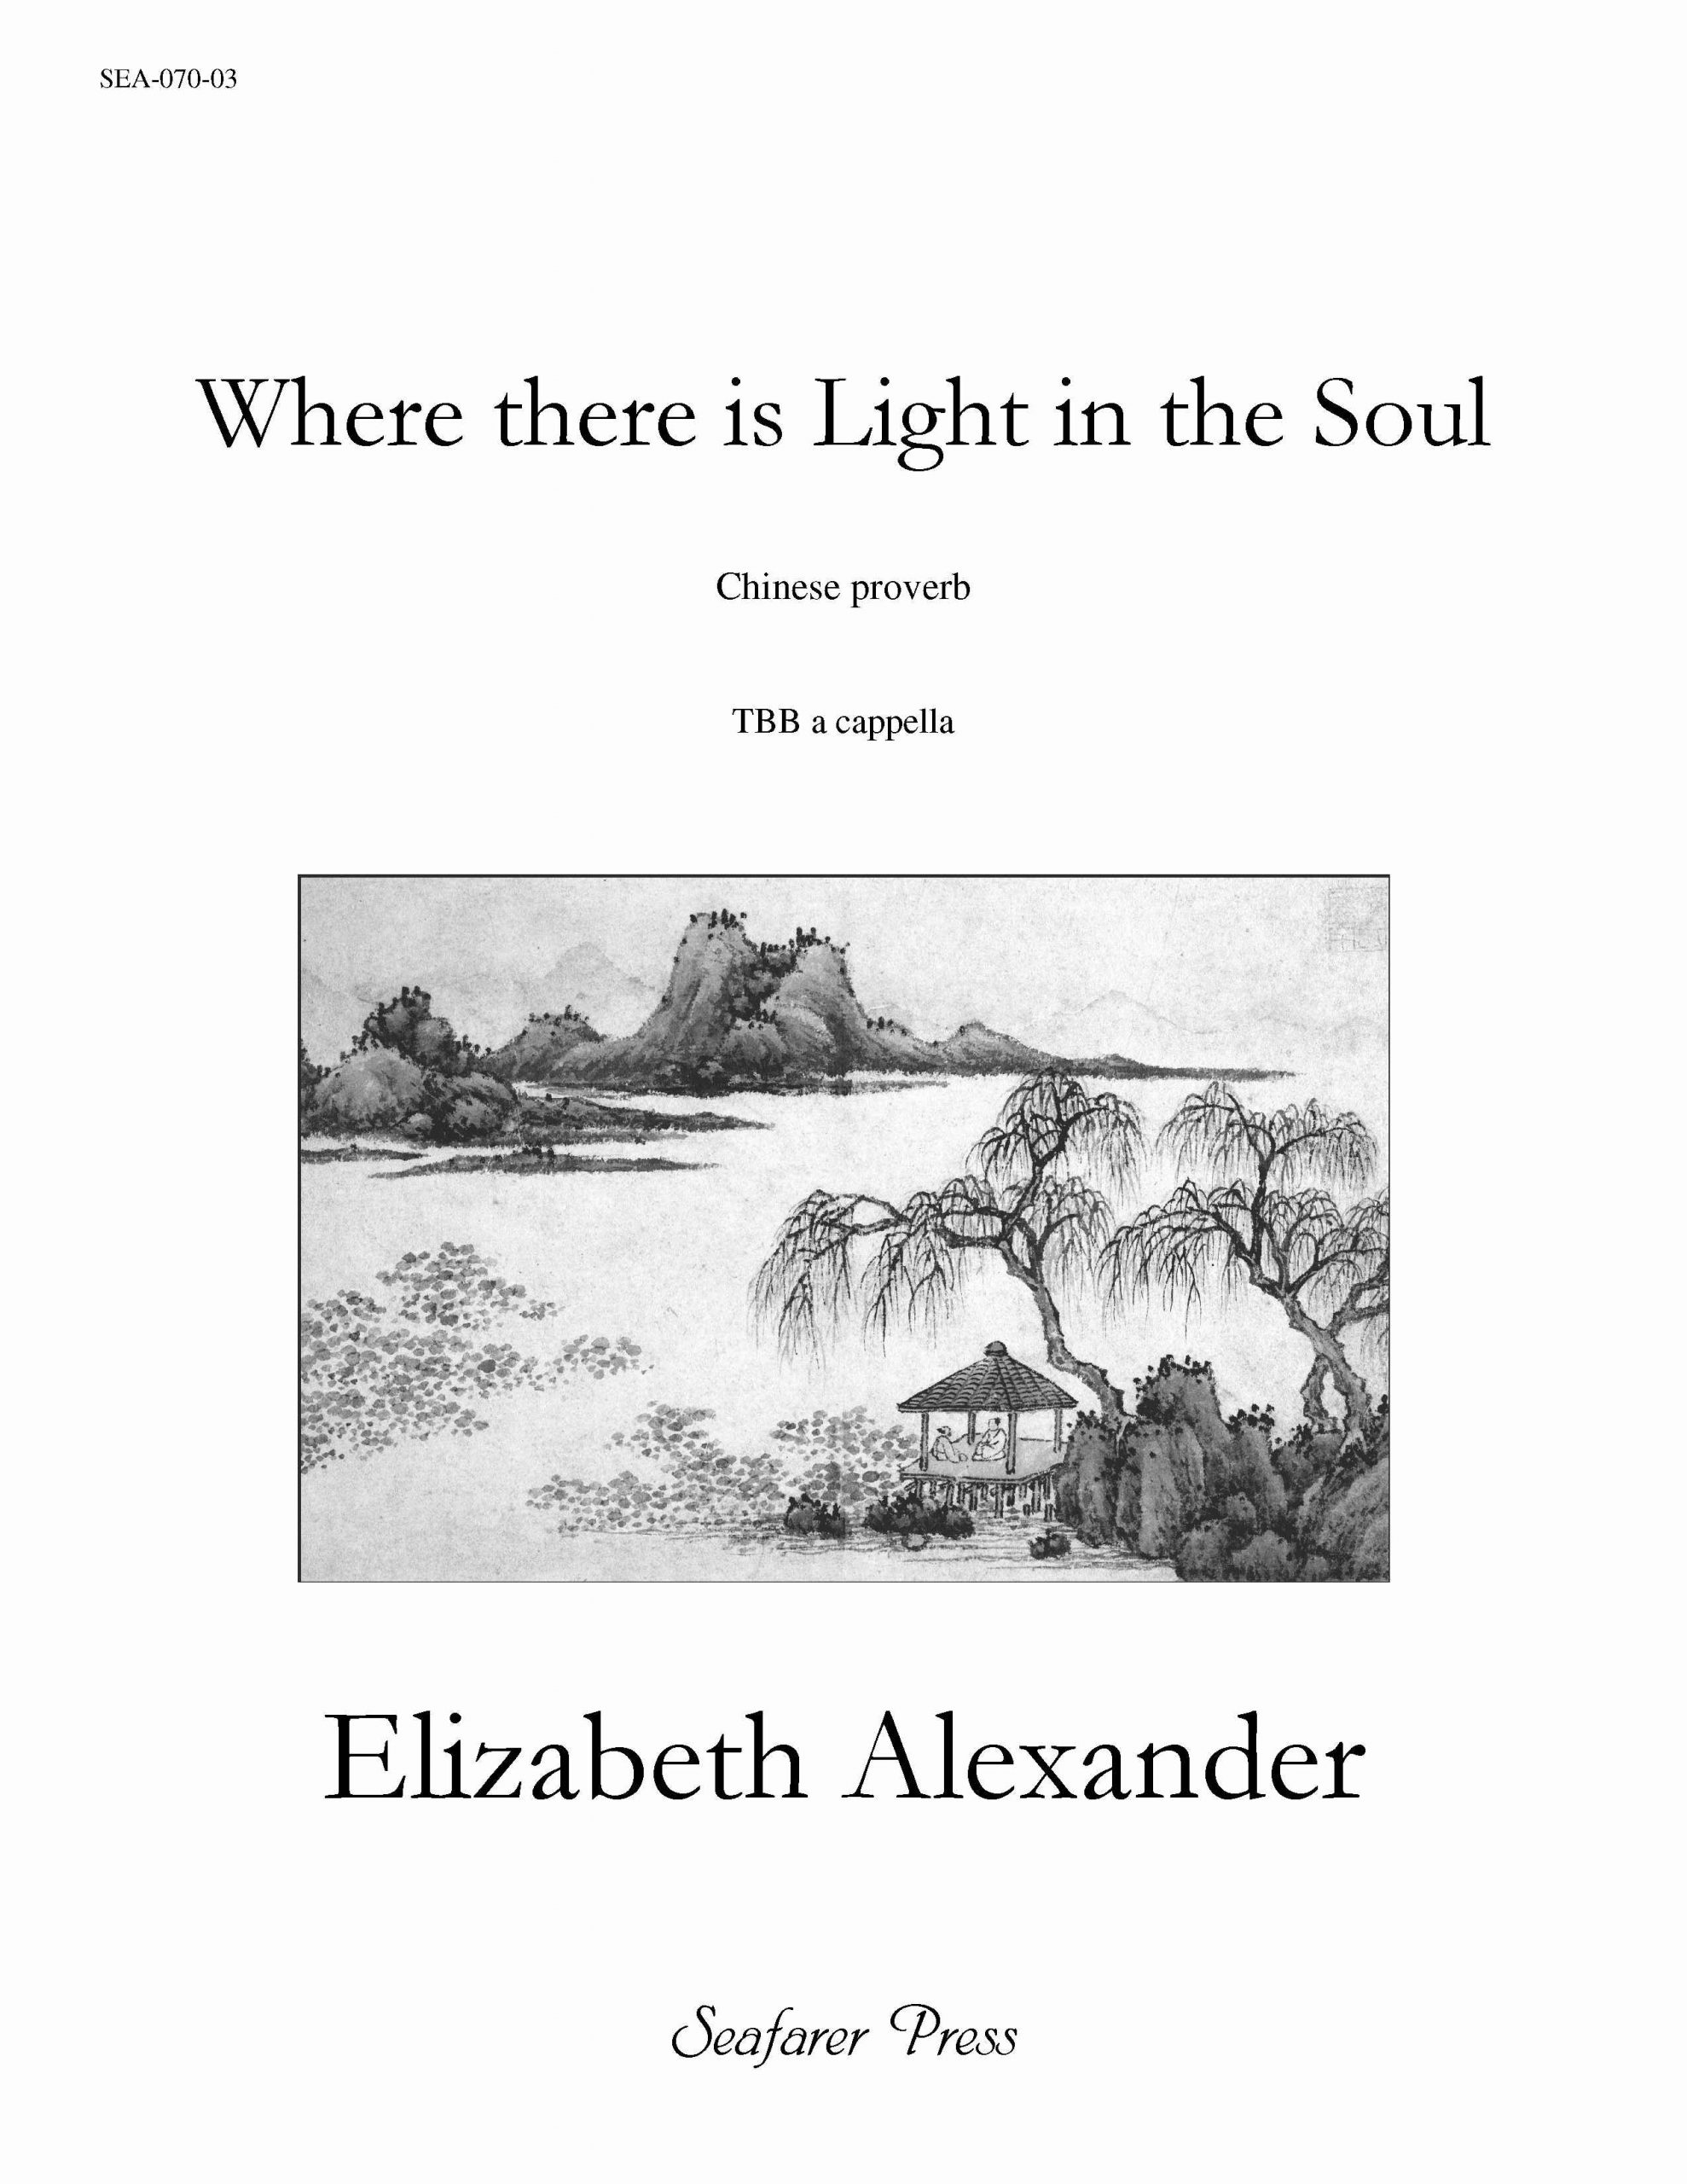 SEA-070-03 - Where there is Light In the Soul